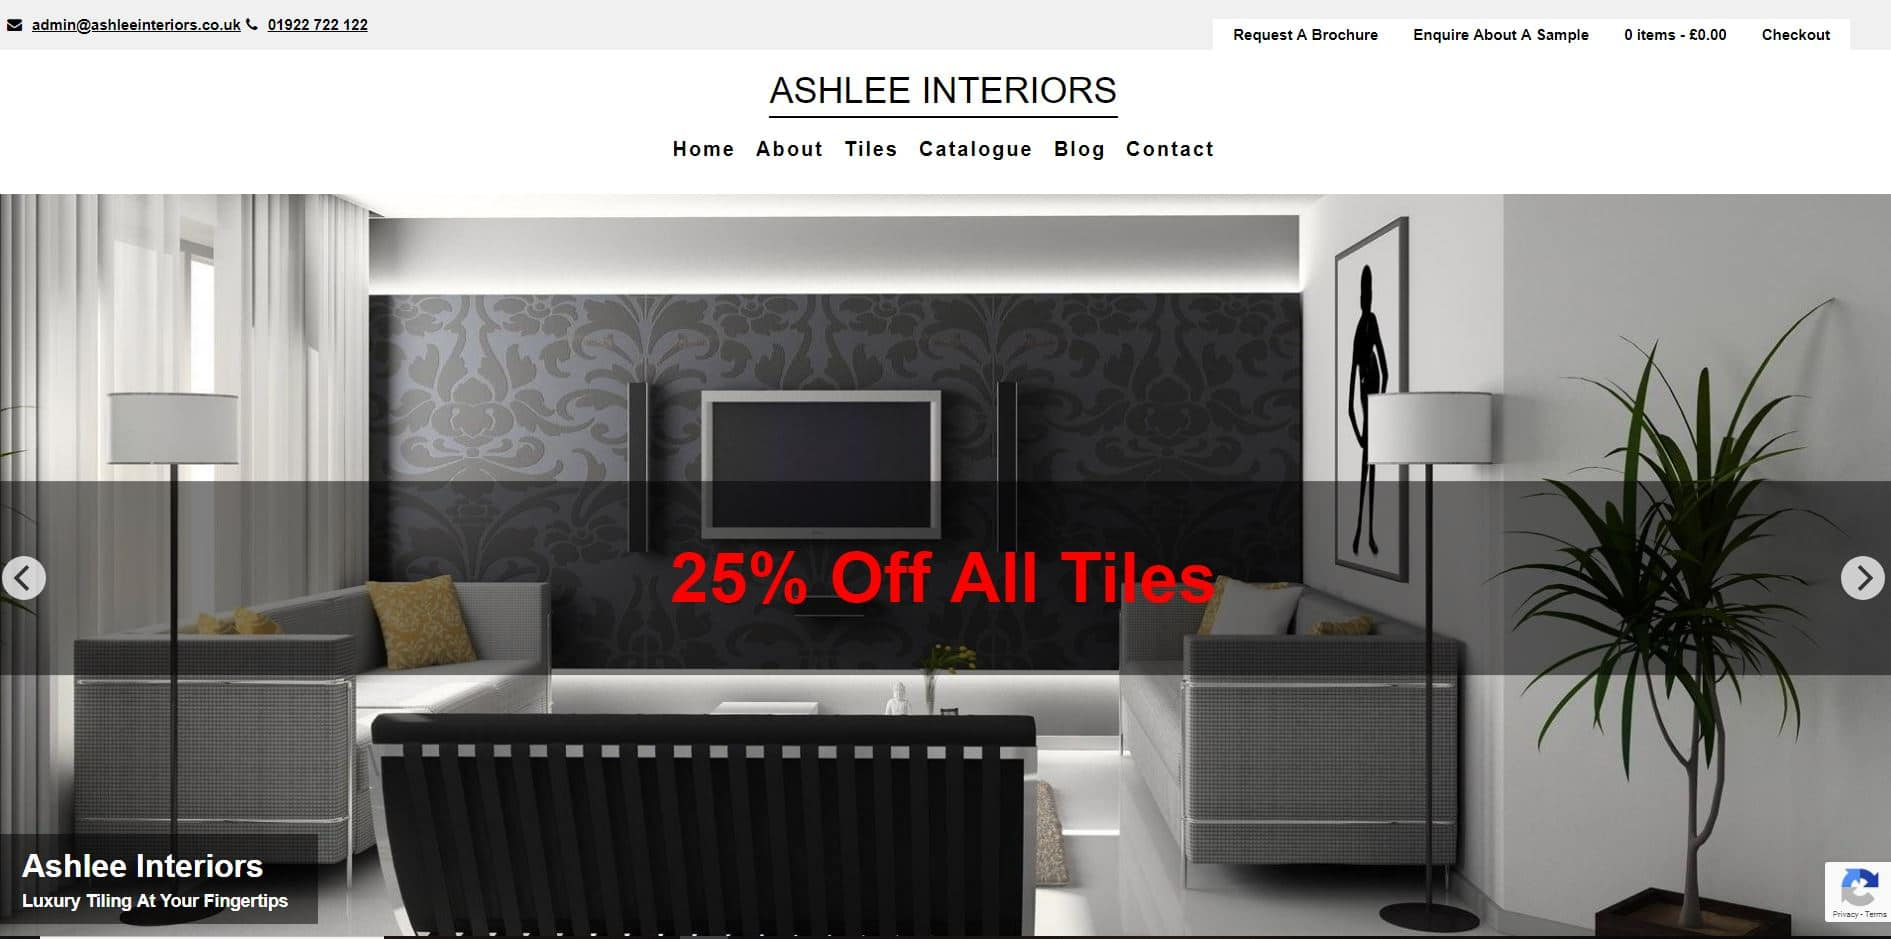 eCommerce Websites Ashley Interiors